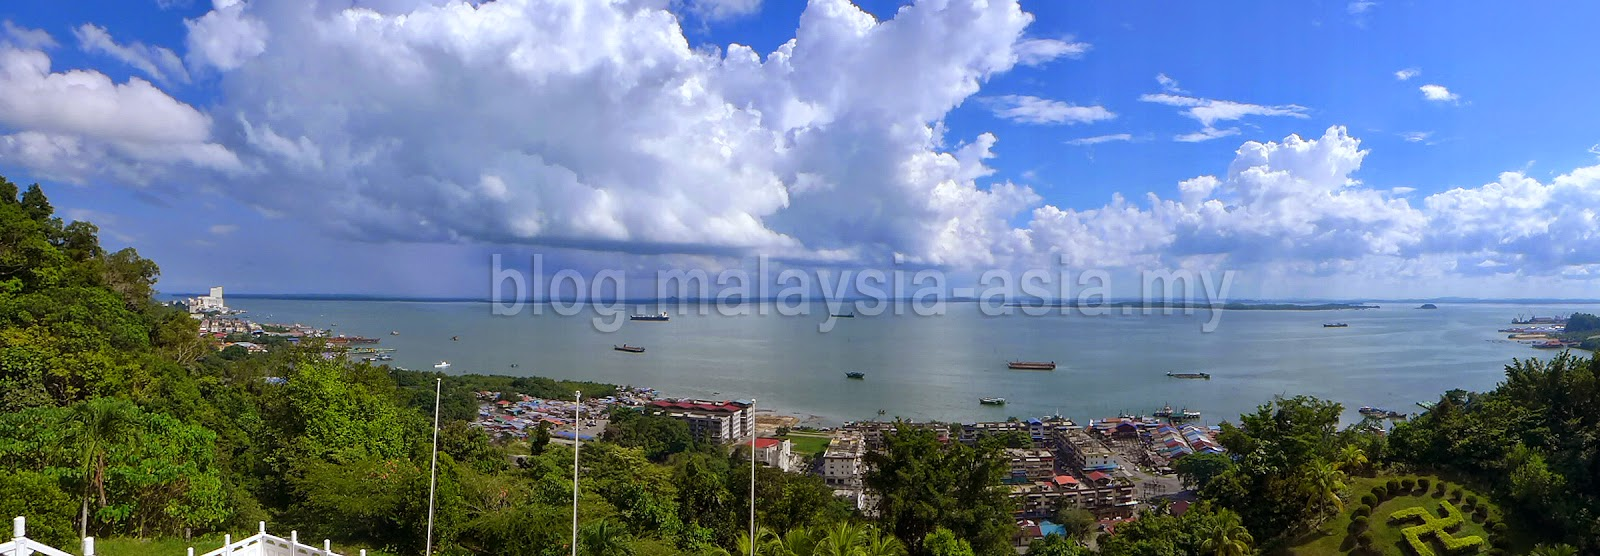 Sandakan City Panoramic Photo